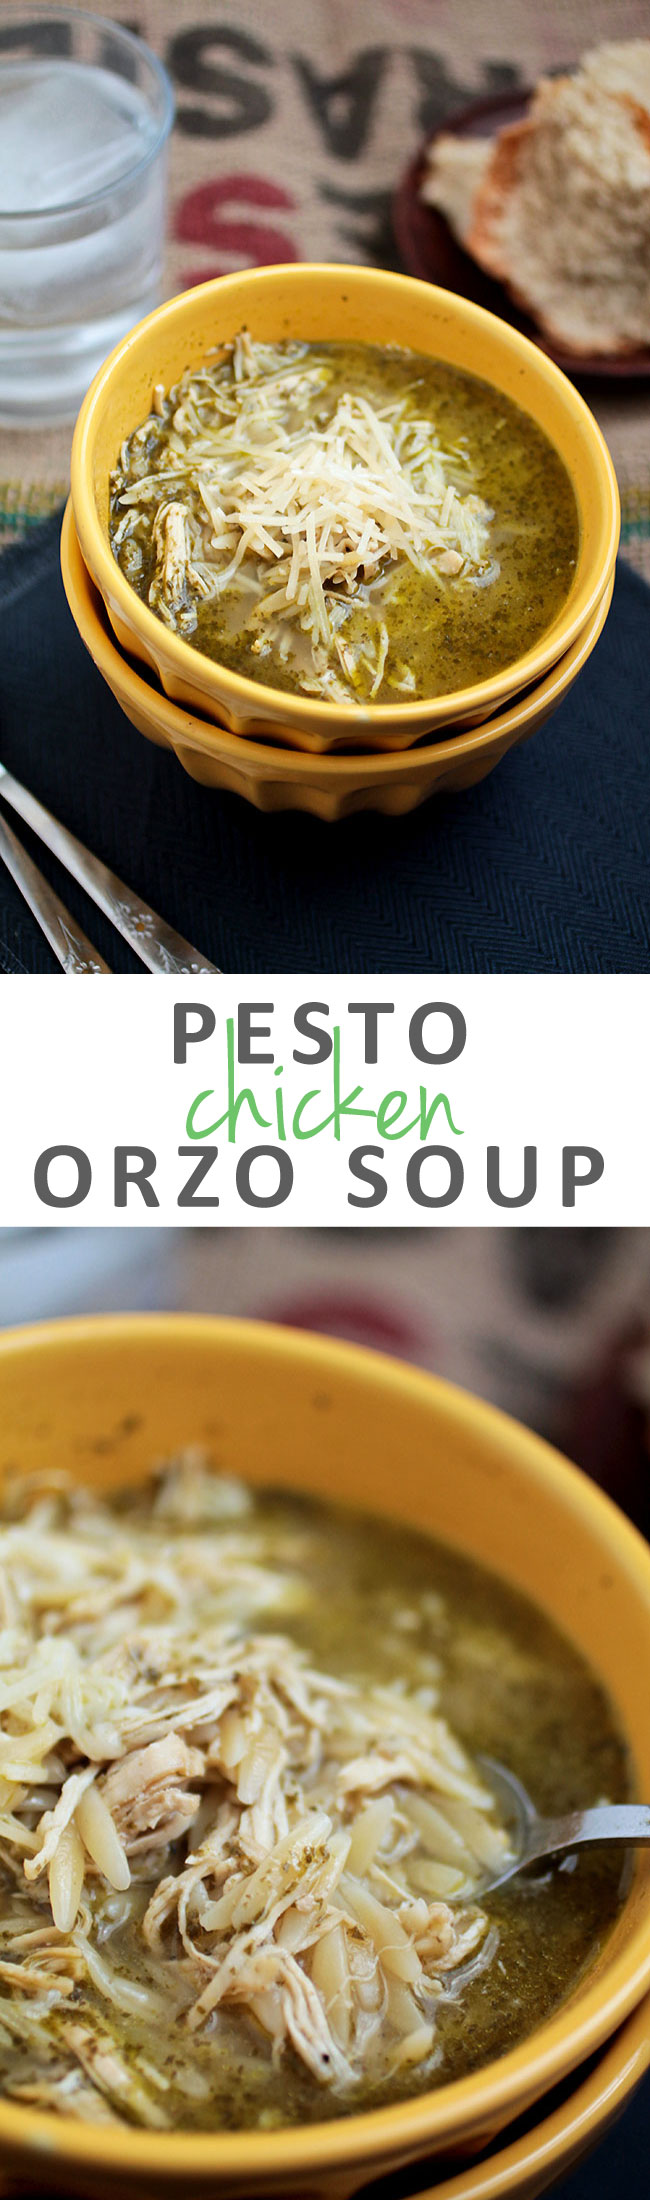 Pesto Chicken Orzo Soup | This easy chicken soup recipe with pesto and orzo is perfect for busy weeknights. Ready in 30 minutes.